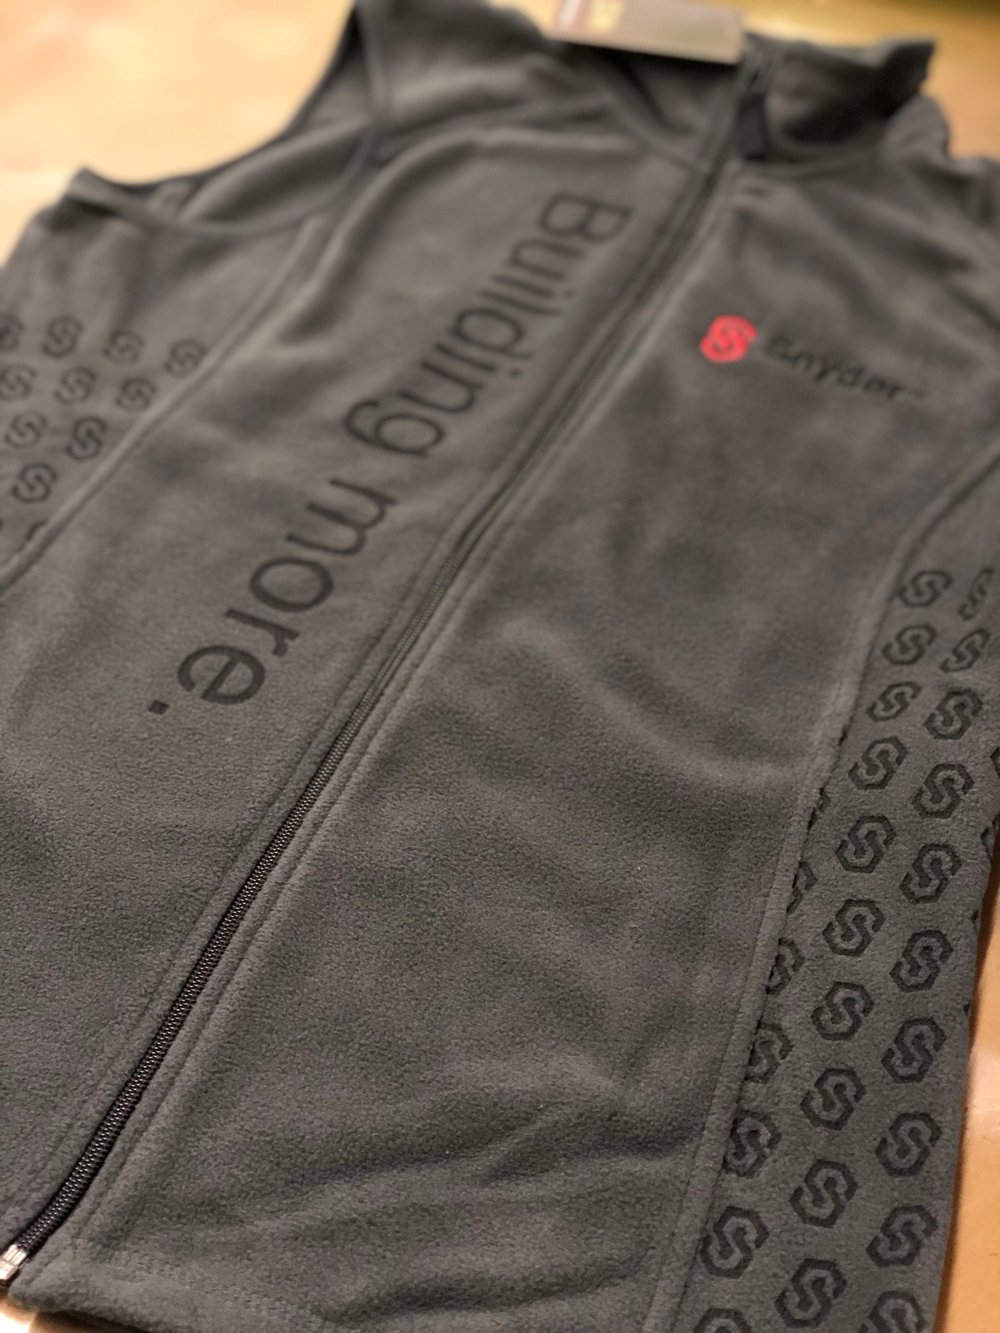 Laser Etching and Left Chest Embroidery on Fleece Vest for Snyder Roofing